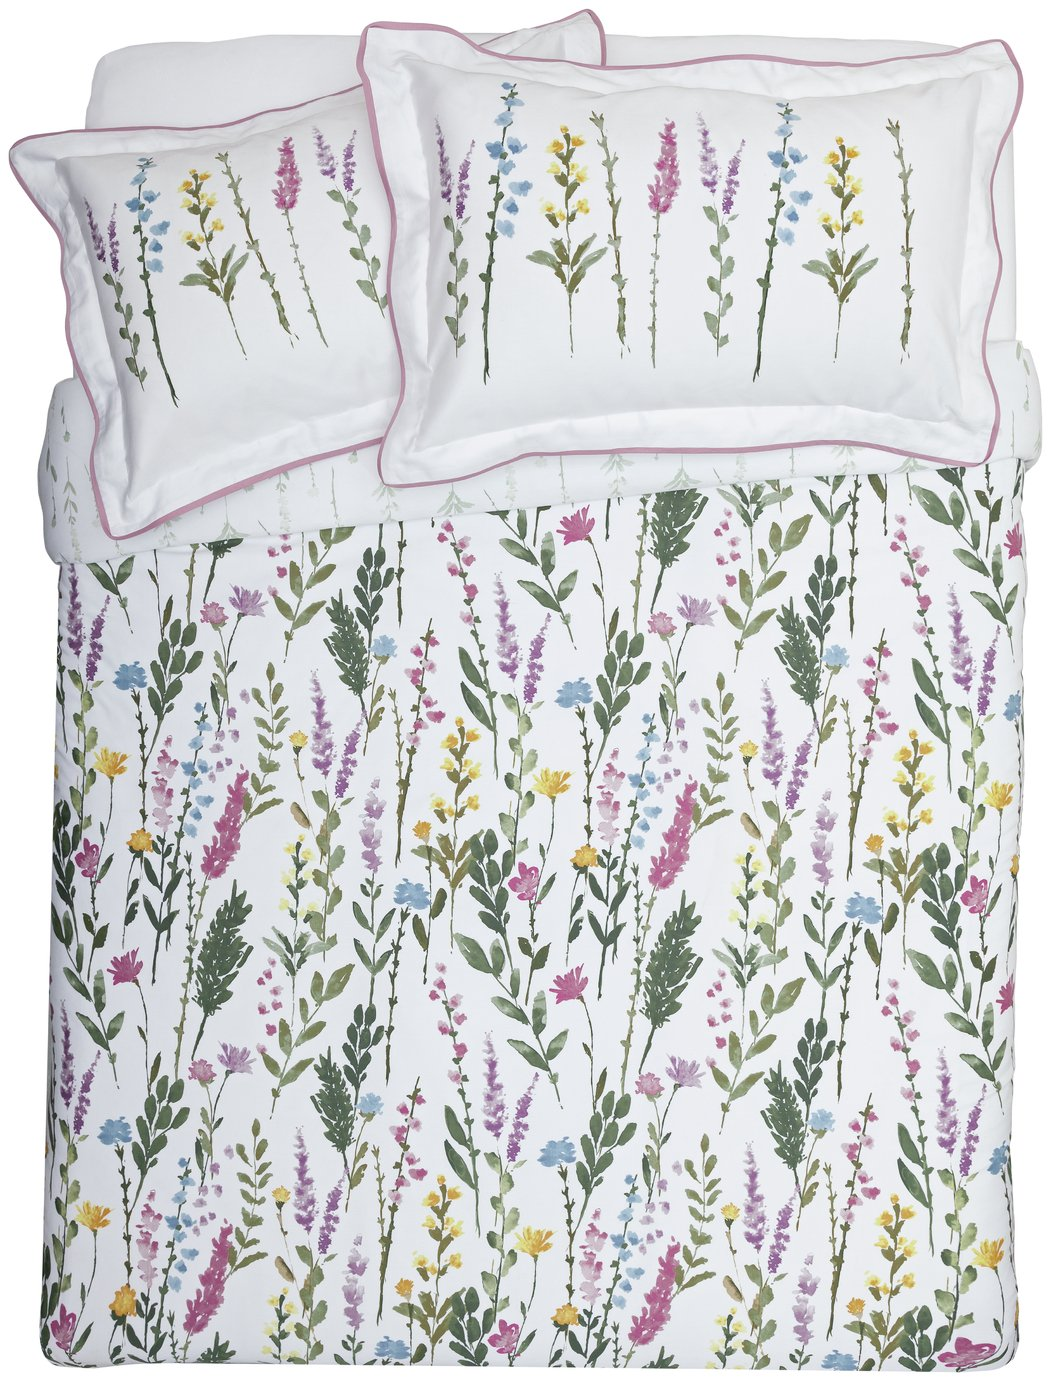 Argos Home Botanical Floral Bedding Set - Superking